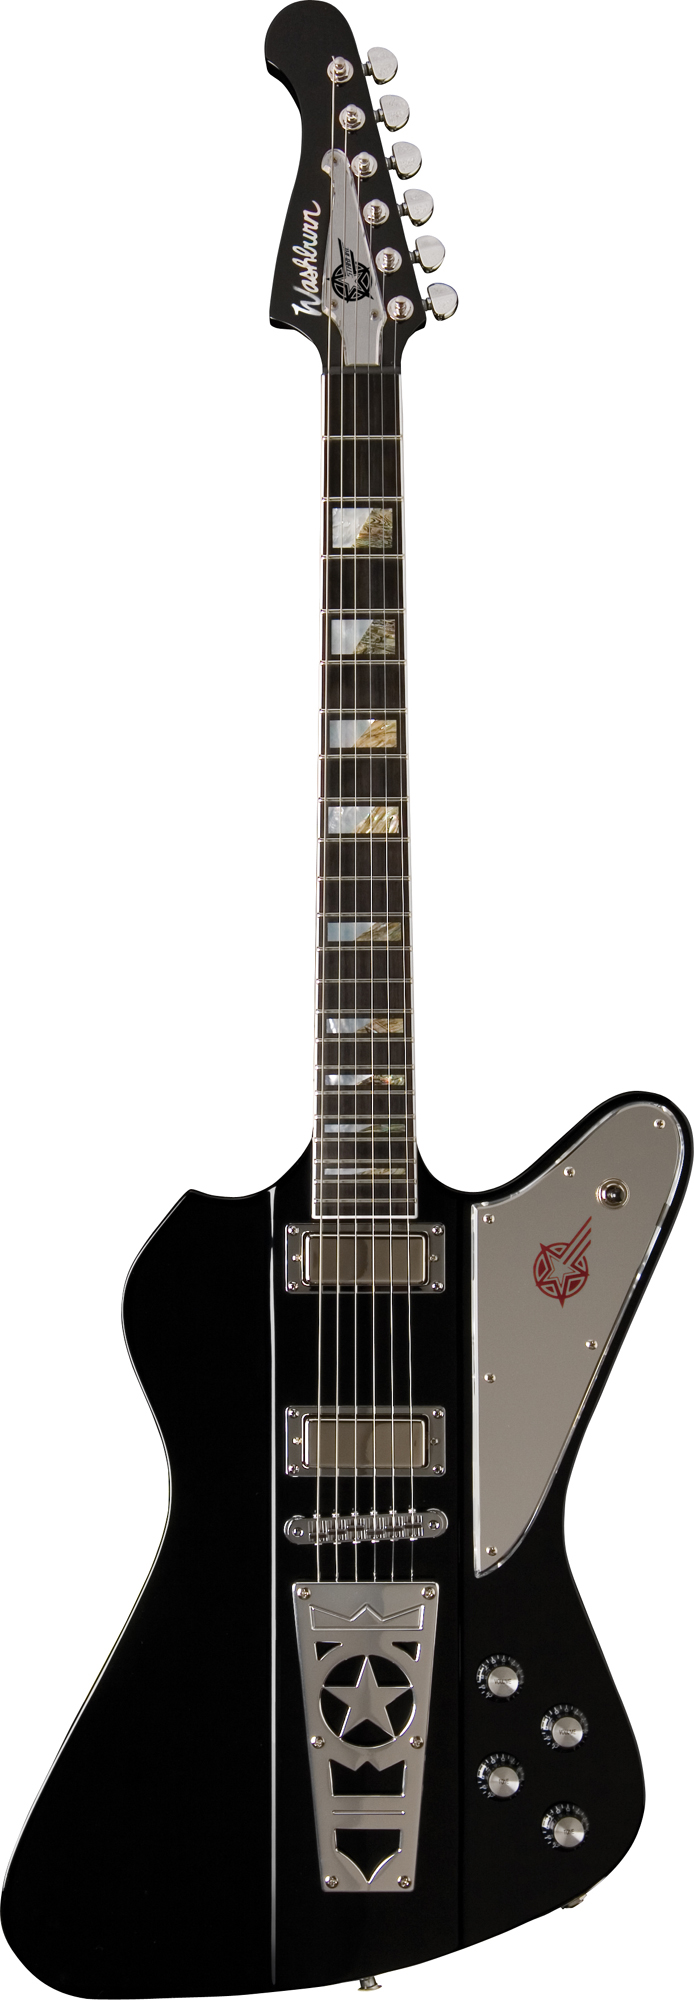 washburn ps2012b paul stanley series electric guitar with a black finish was12 ps2012b. Black Bedroom Furniture Sets. Home Design Ideas